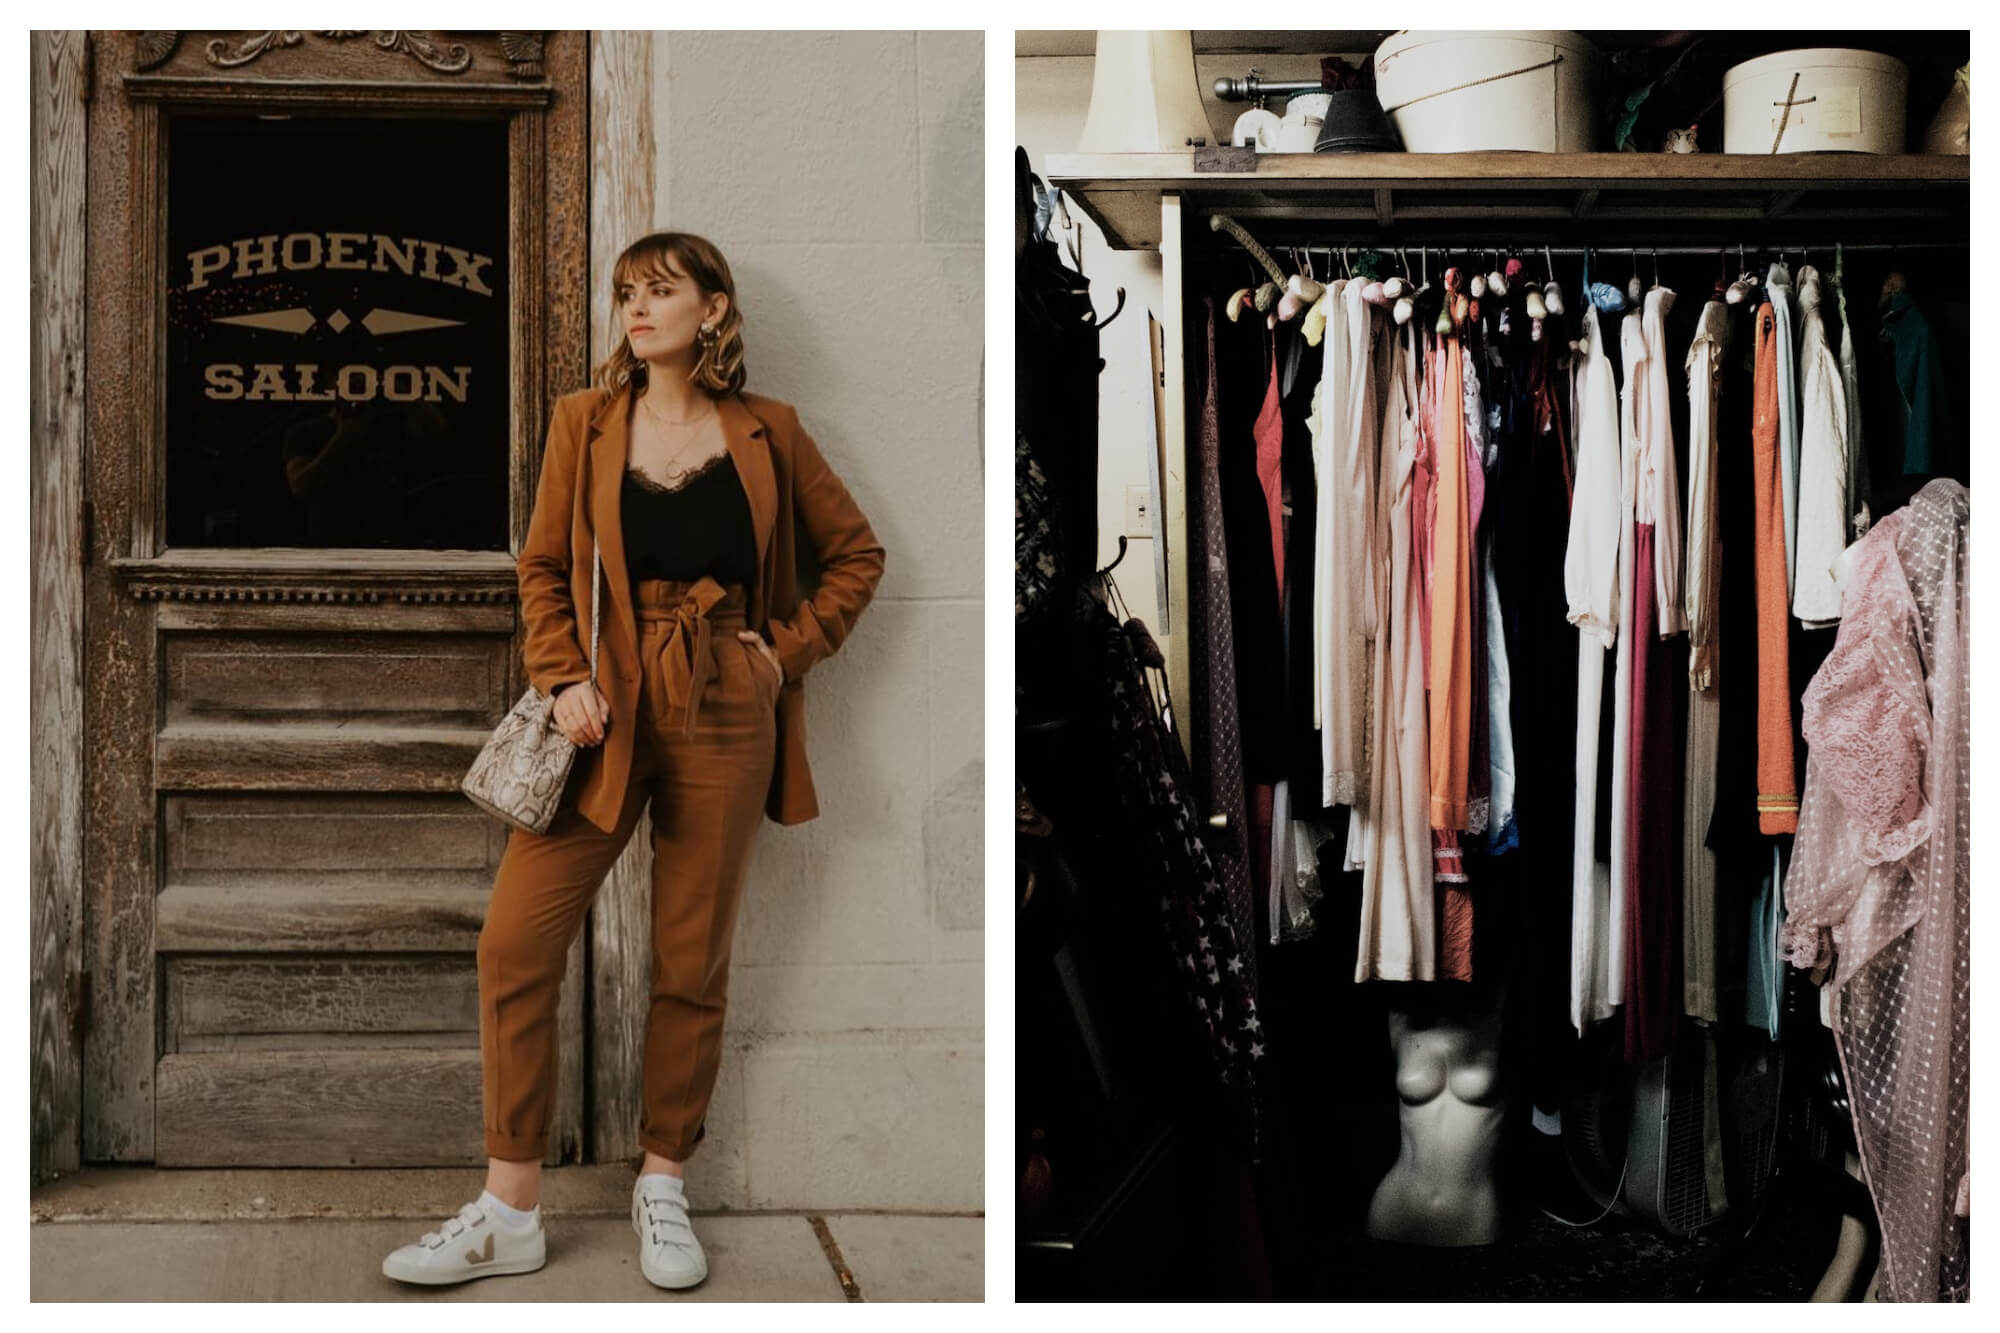 Left: a woman with shoulder length brown hair wears a brown trousers and blazer with a black camisole, and white sneakers. She stands next to a rustic door bearing the workds Phoenix Saloon.  Right: the interior of a small closet with assorted women's clothes hanging.